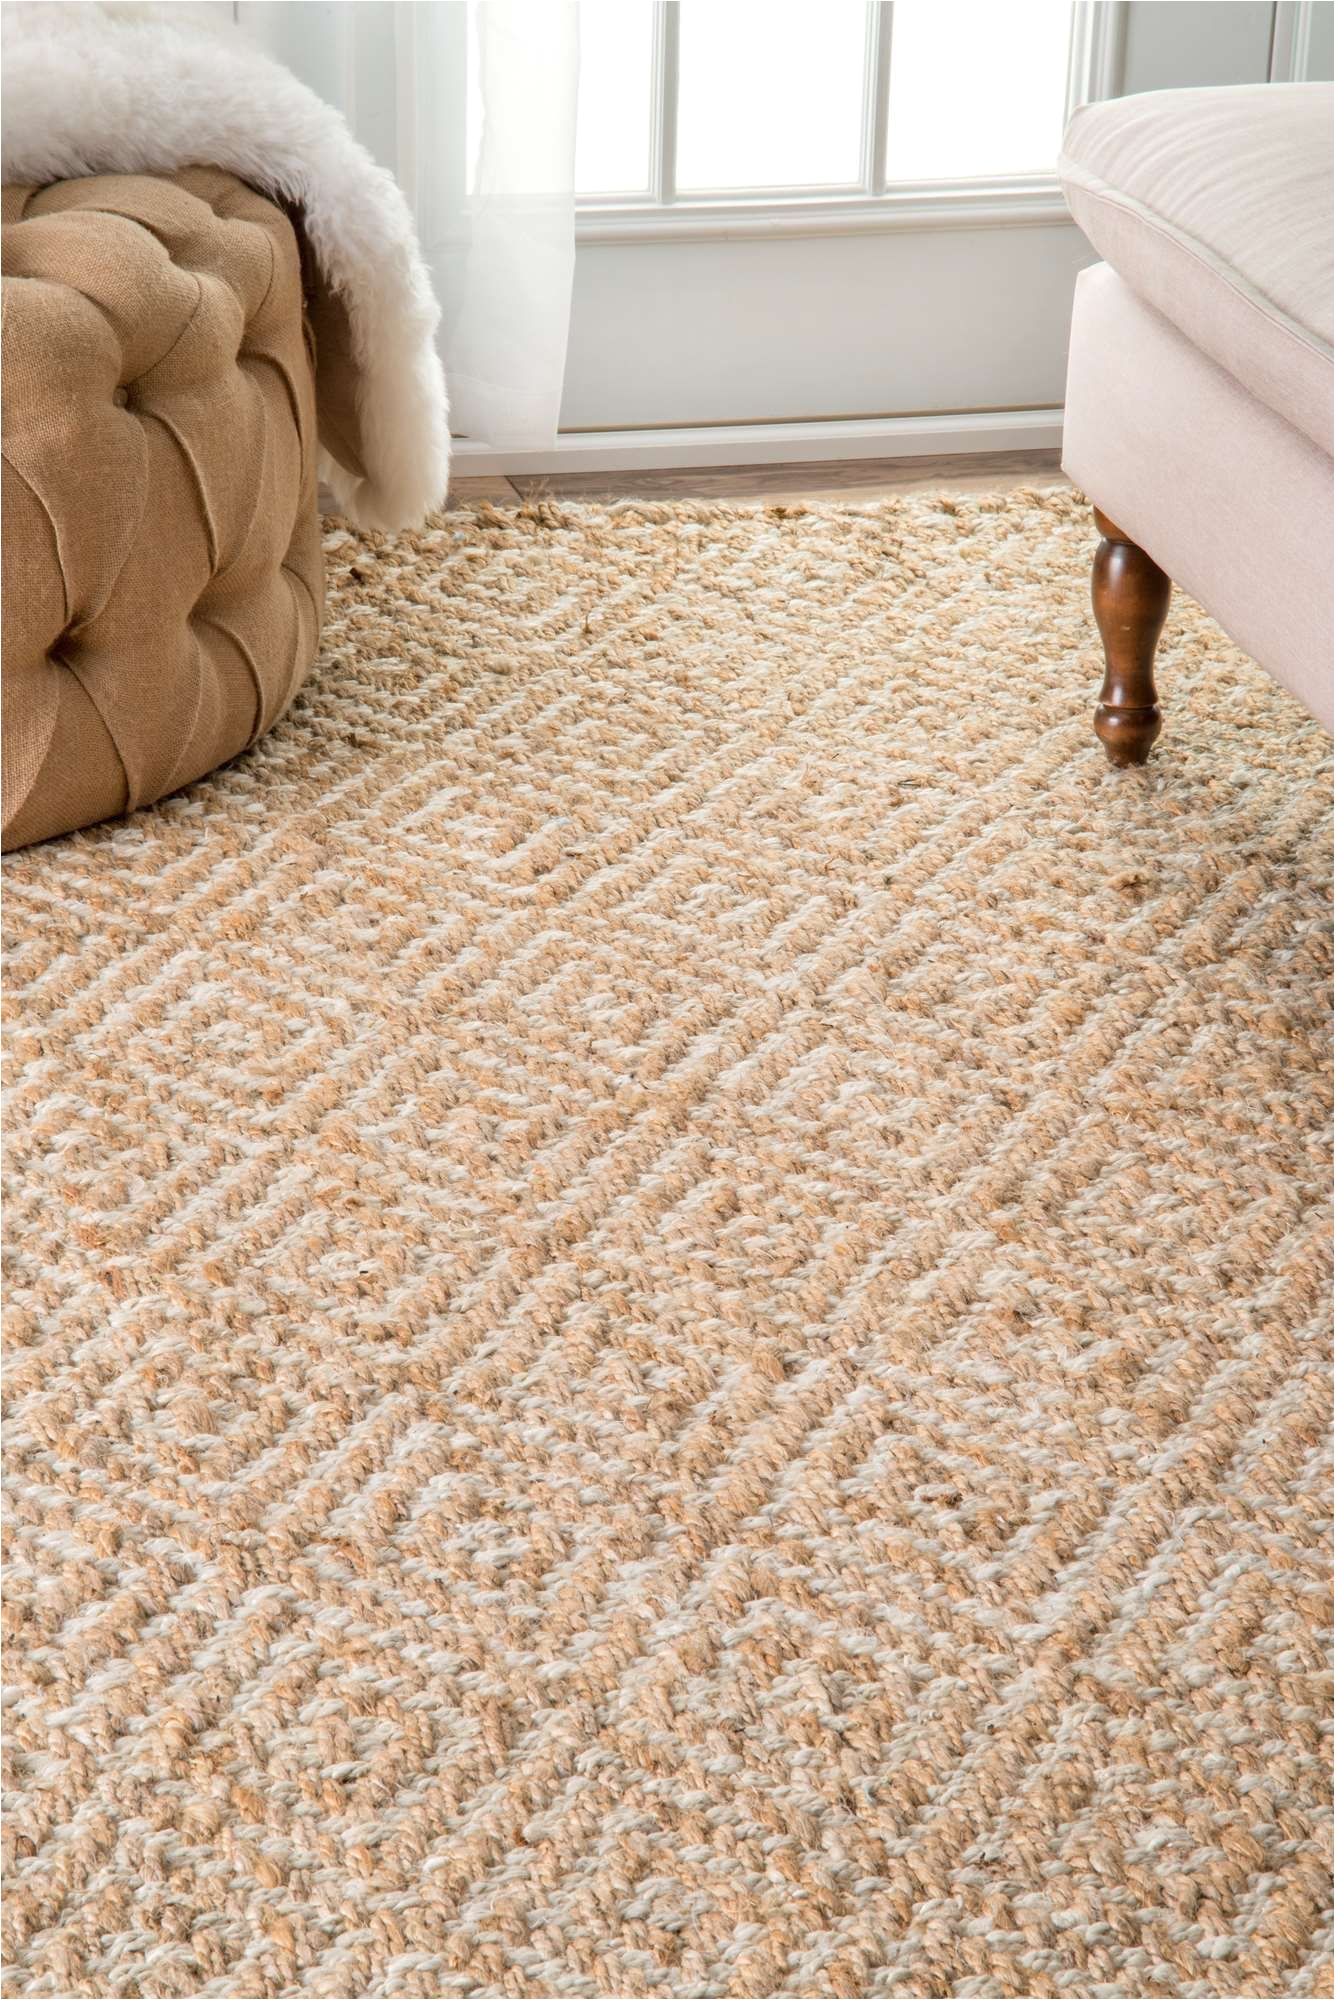 Soft Natural Fiber Rugs Earthy organic and Handwoven This Natural Fiber Rug Will Bring A